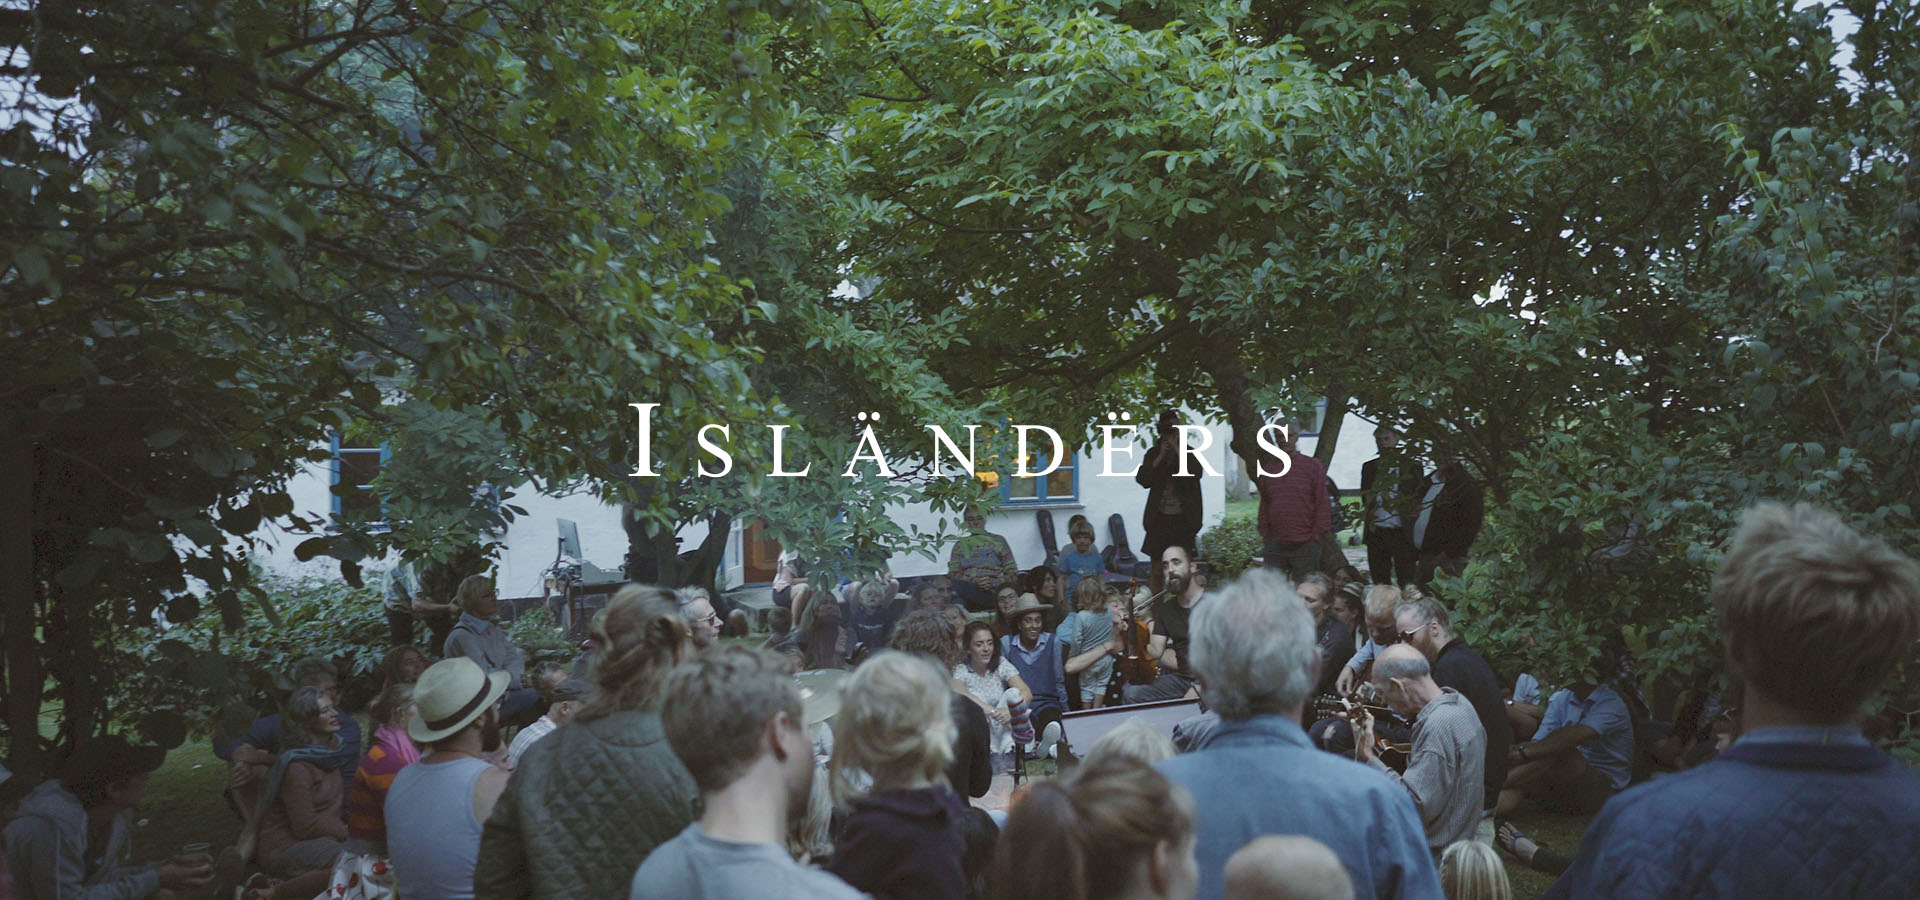 "<a href=""http://www.moensessions.com/2018/09/23/aug-islanders/"">August 2018</a>"